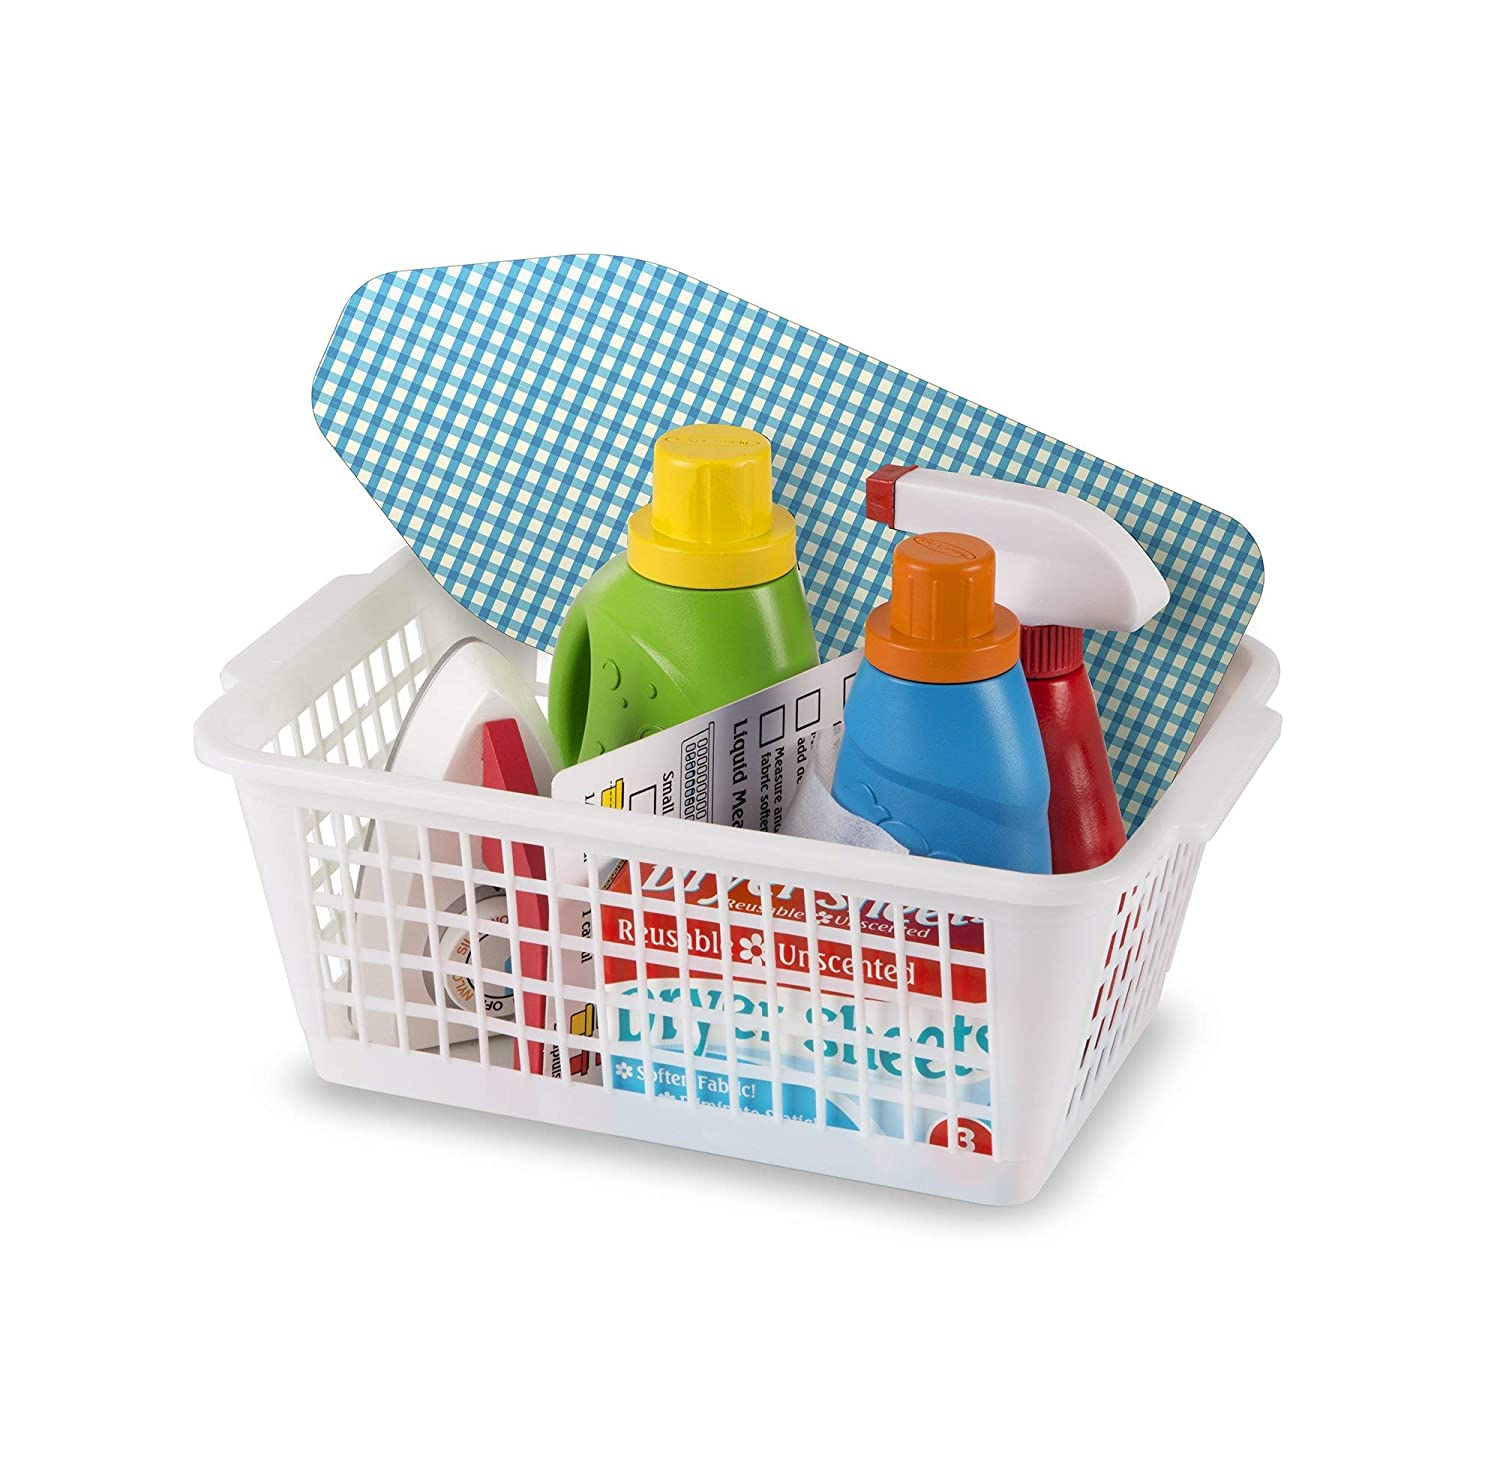 Ironing Board Renewed 11 Pcs Melissa /& Doug Laundry Basket Play Set With Wooden Iron and Accessories